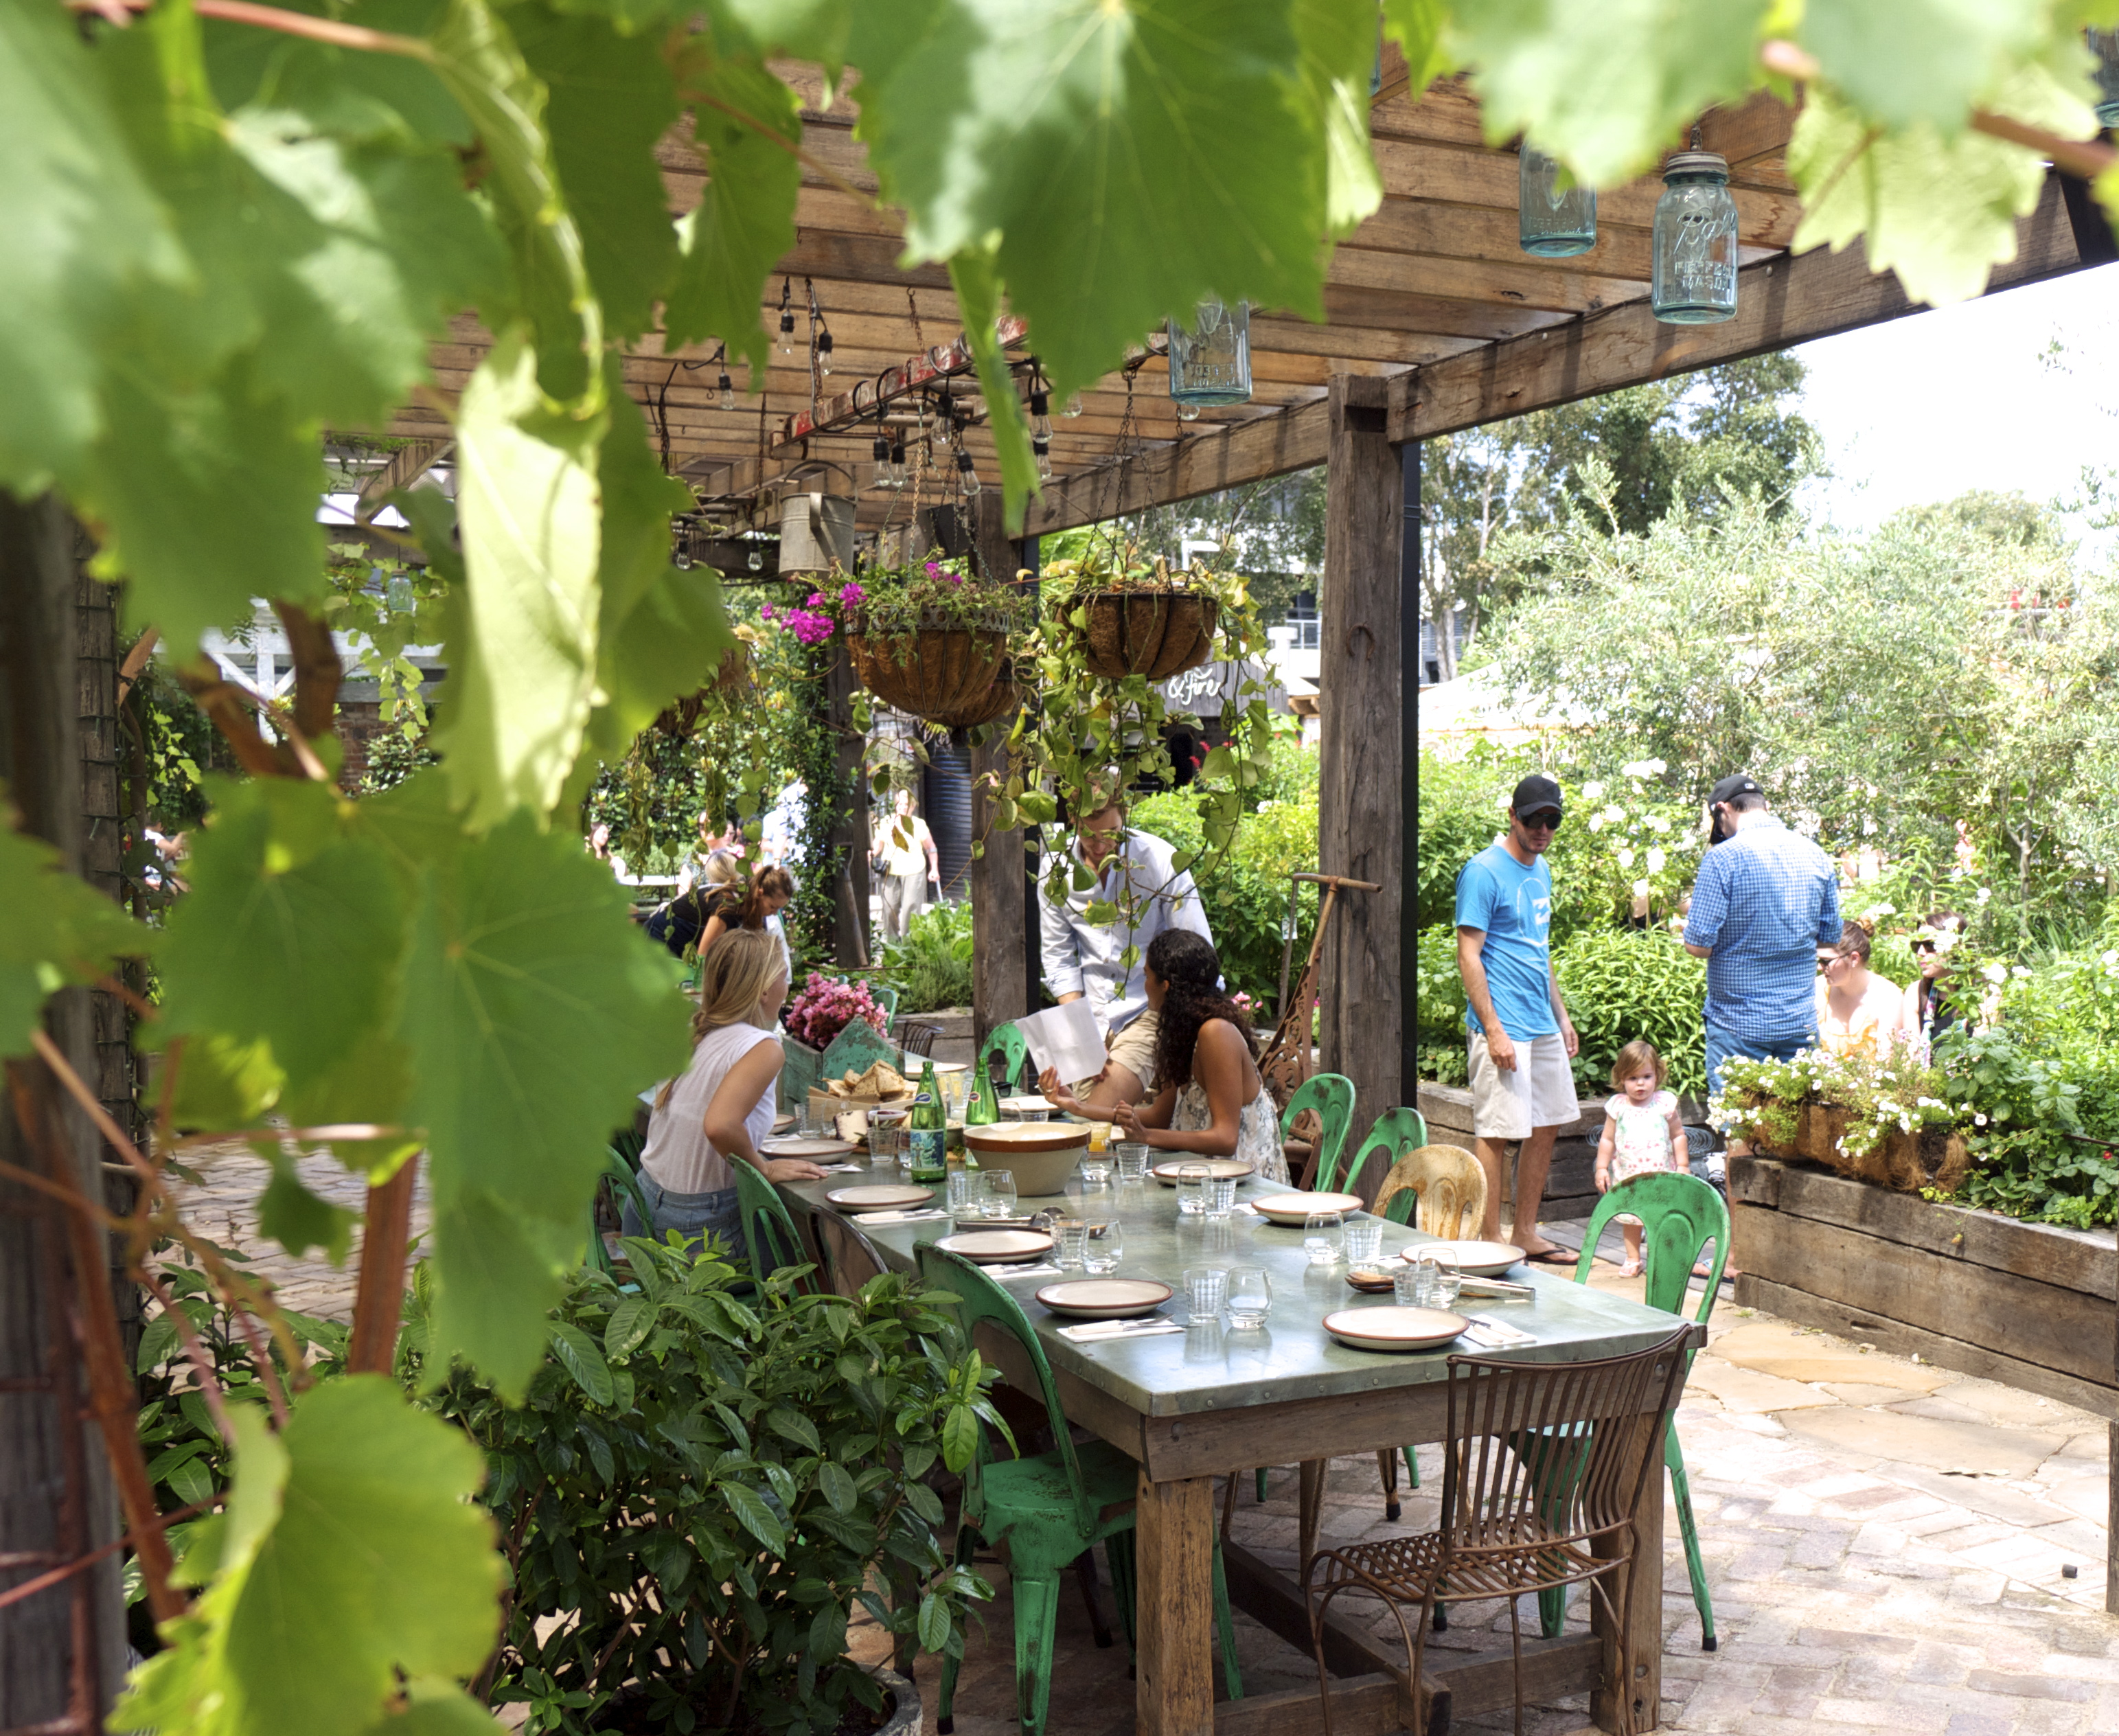 The Grounds of Alexandria - Outdoor Seating